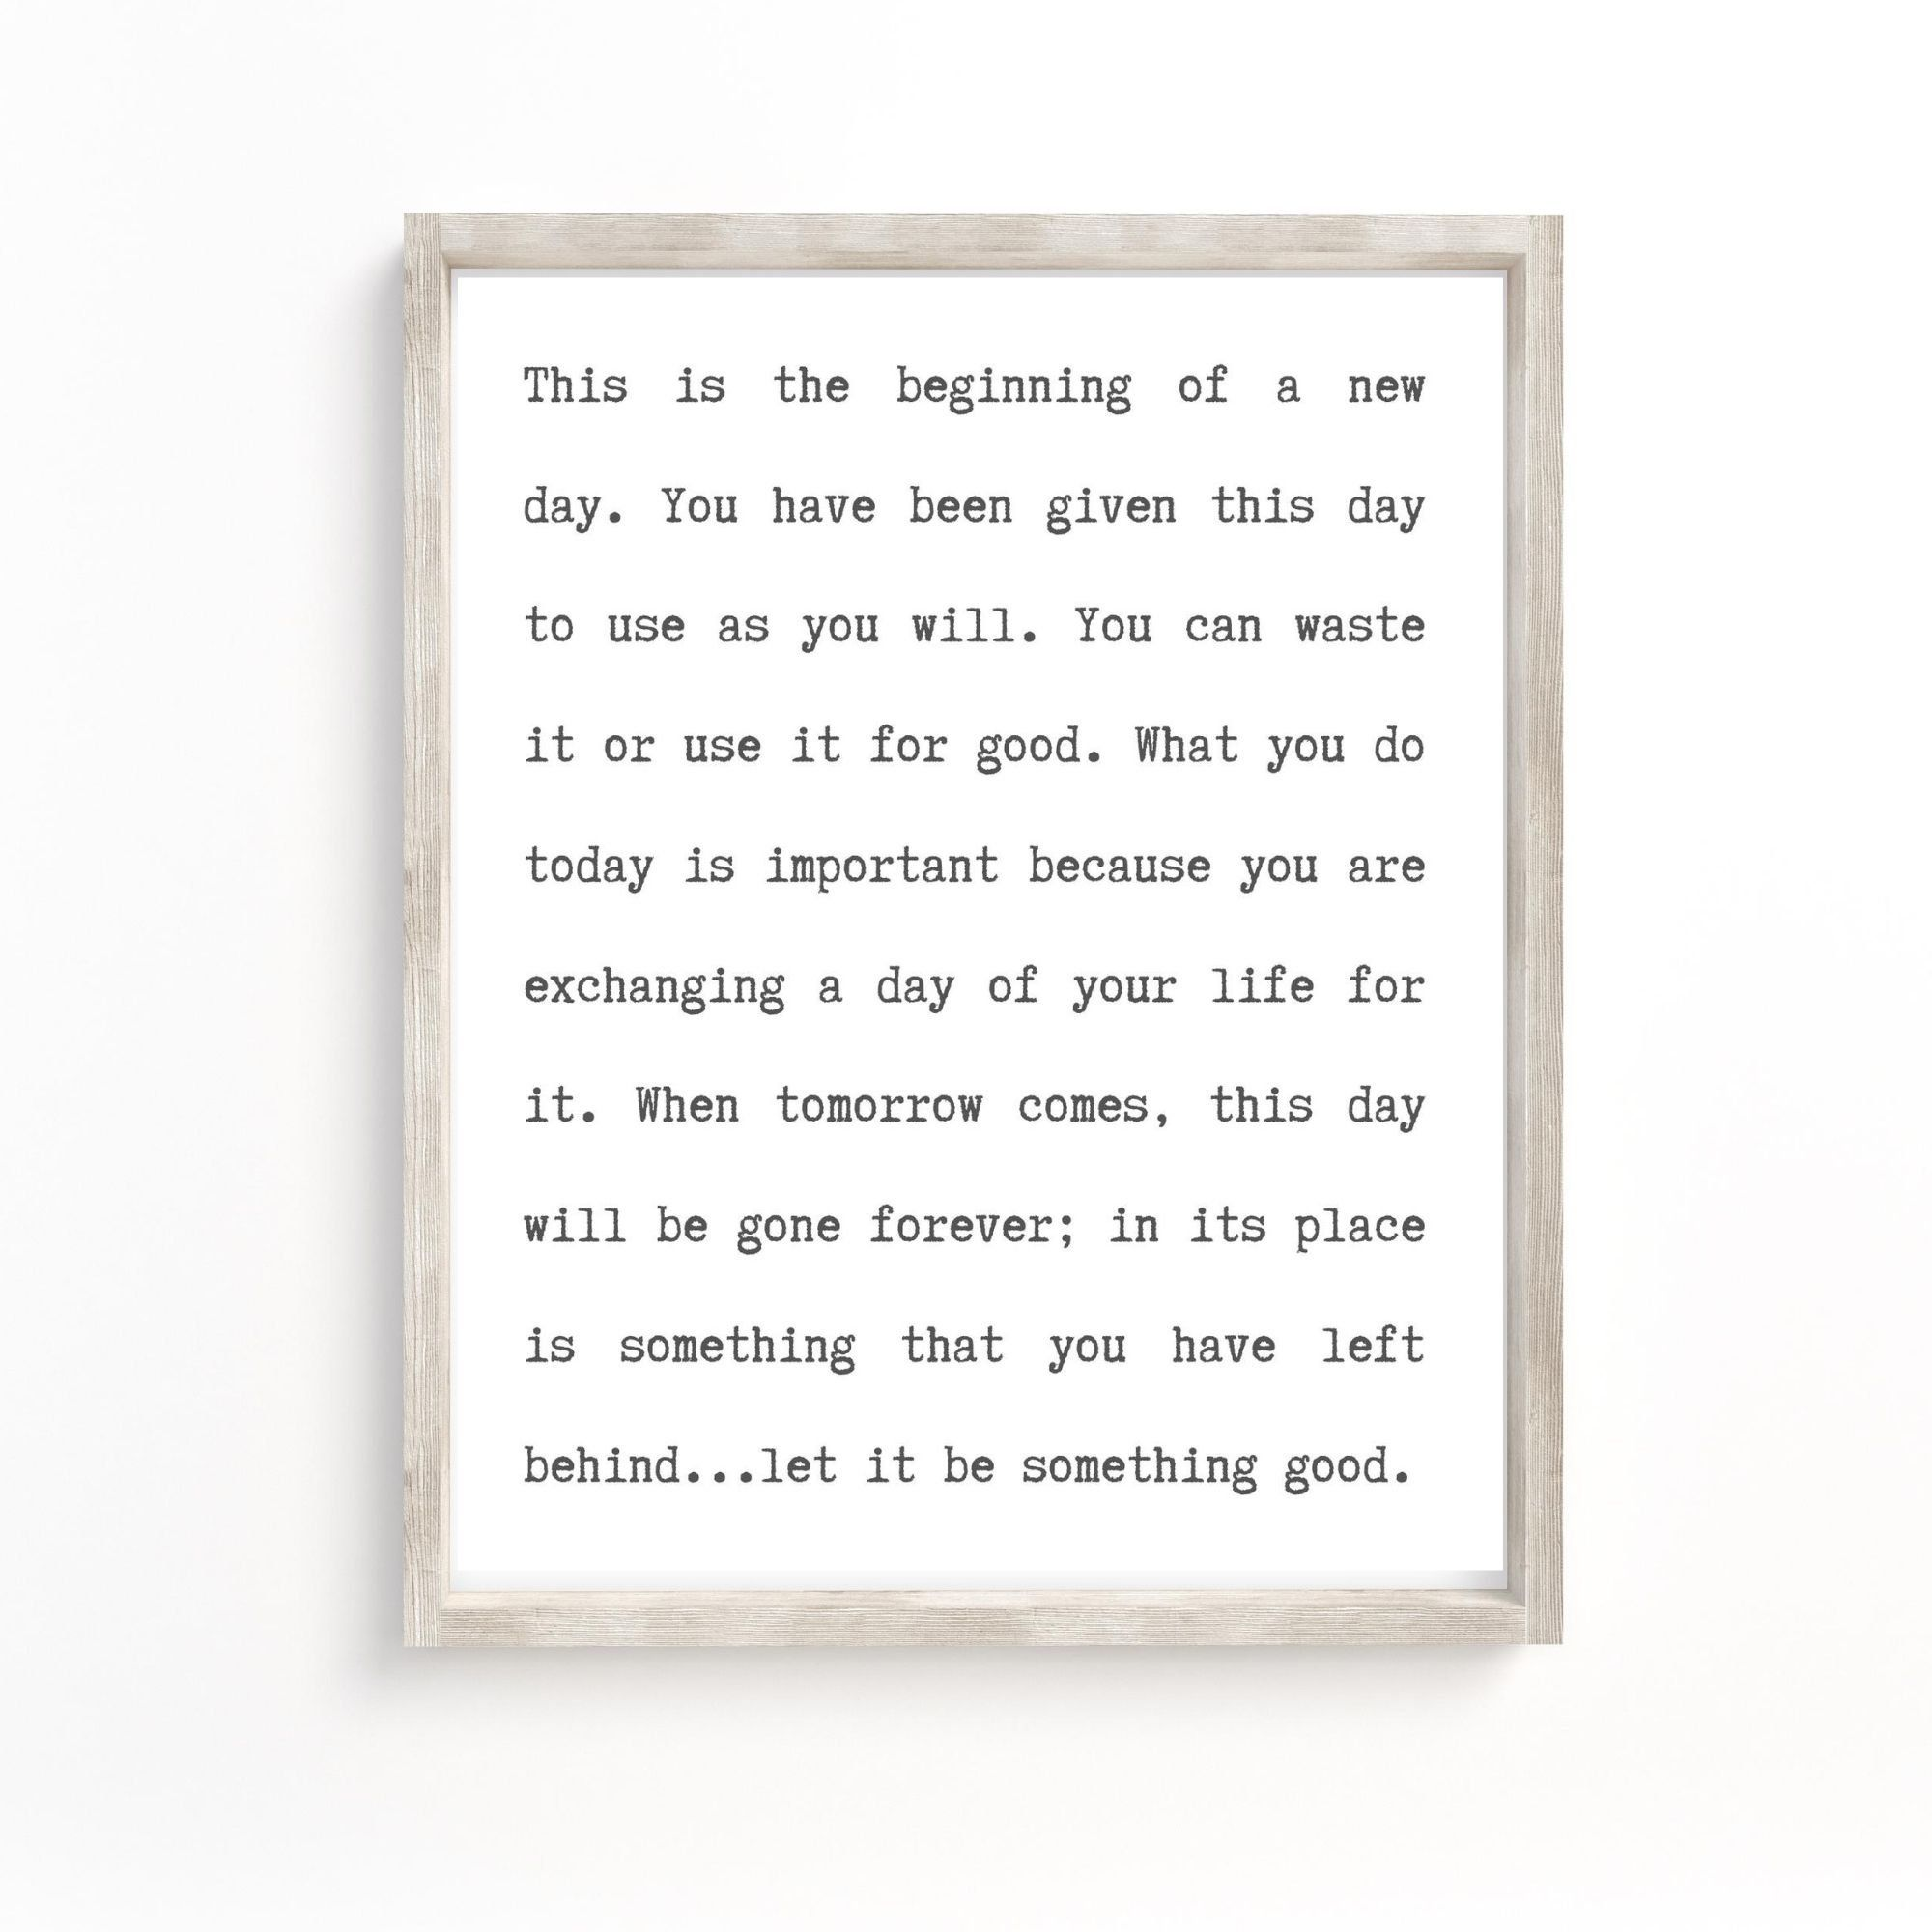 This Is The Beginning Of A New Day Inspirational Quote Etsy Online Printing Companies Affordable Wall Art A New Day